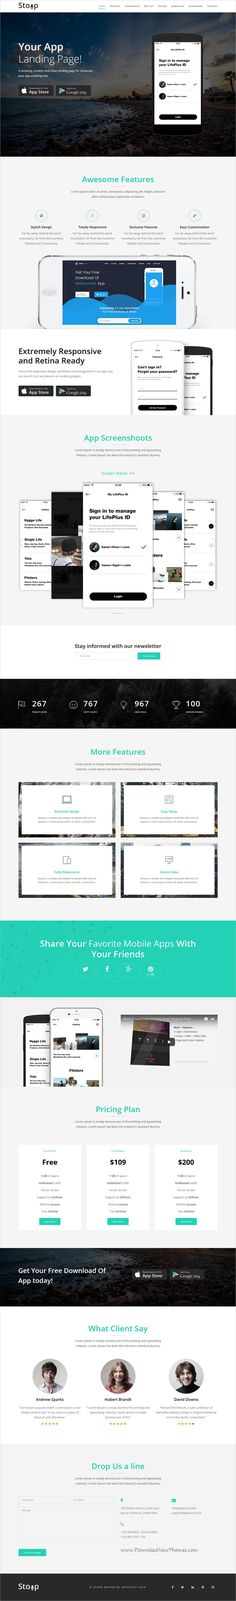 OX - Creative Personal Portfolio Template - Event Registration Form Template Word